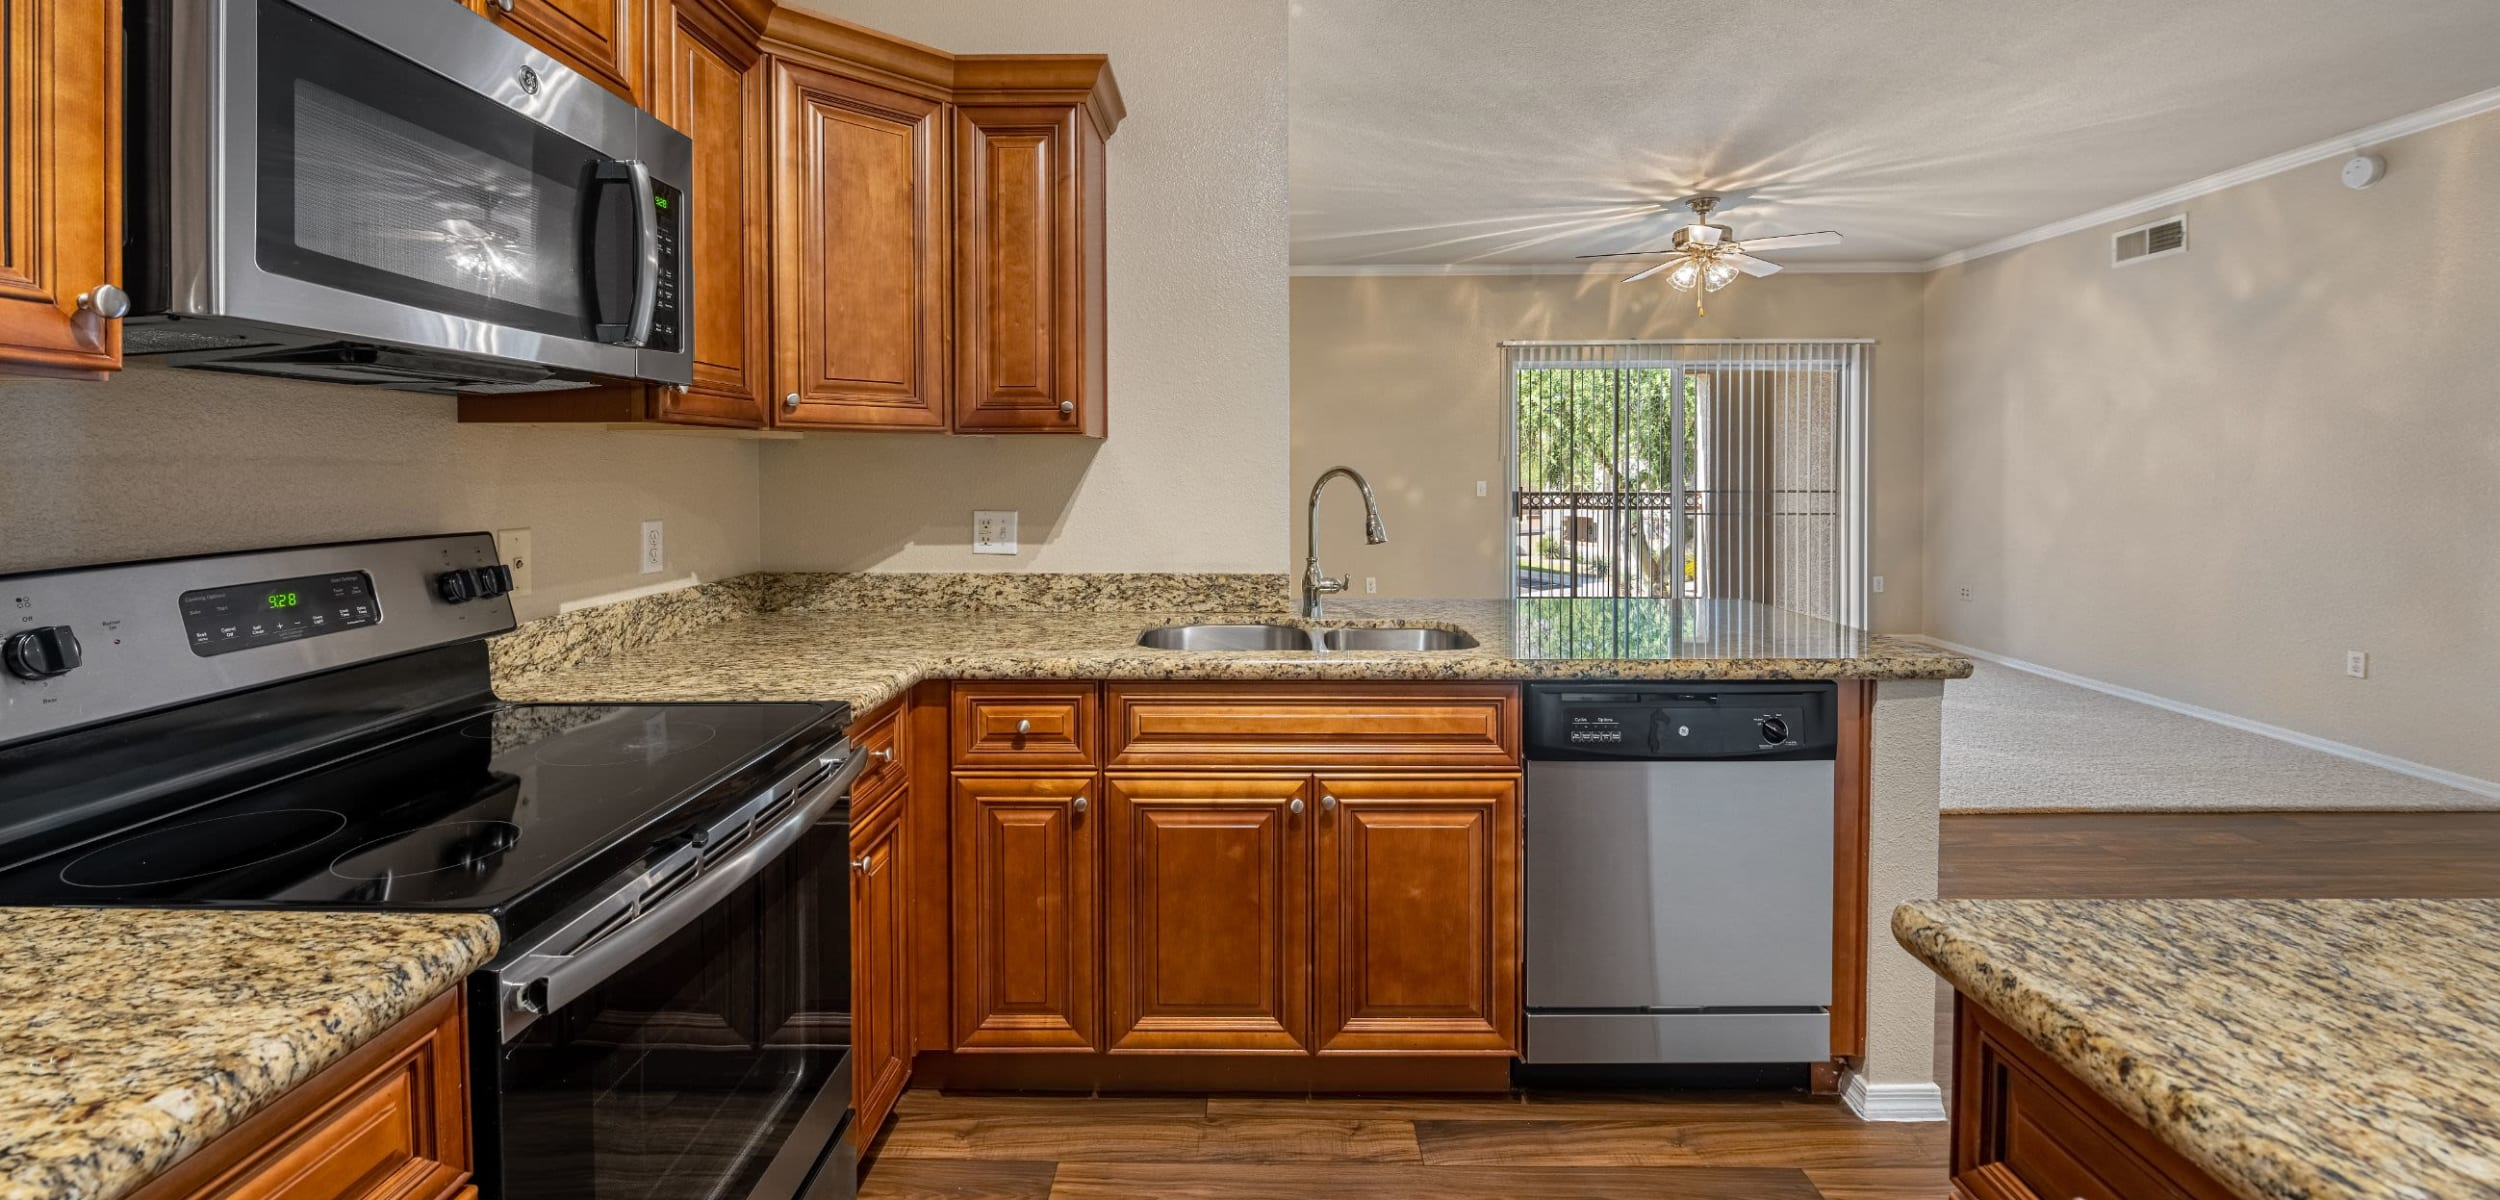 Modern kitchen with wood style floors at Azure Creek in Cave Creek, Arizona